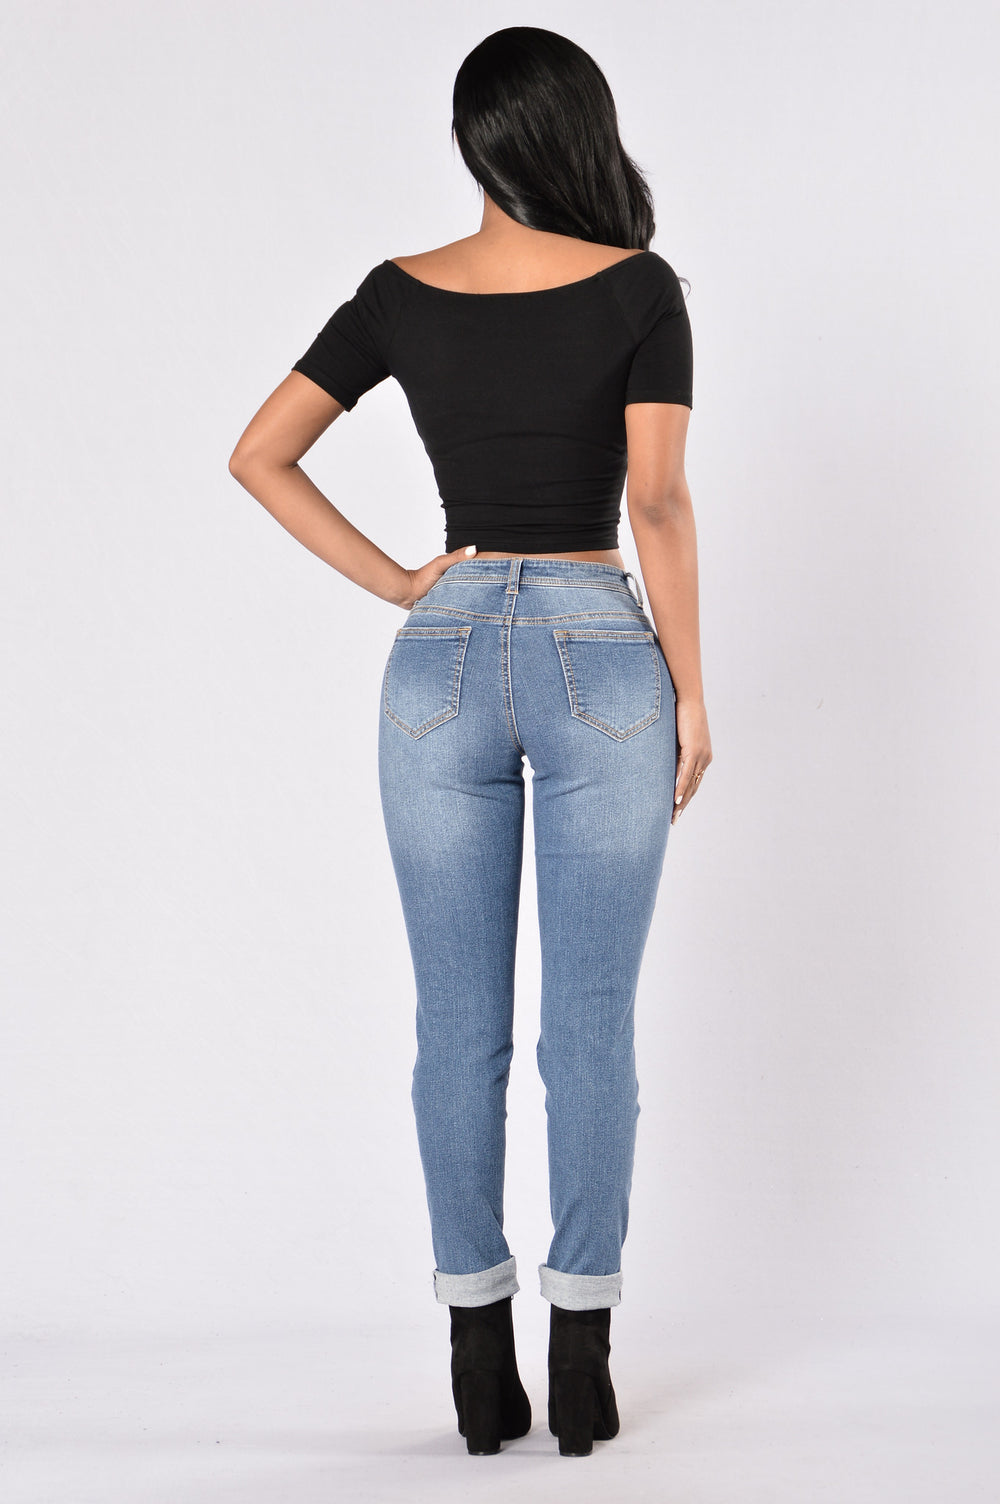 Road Less Traveled Boyfriend Jeans - Medium Wash